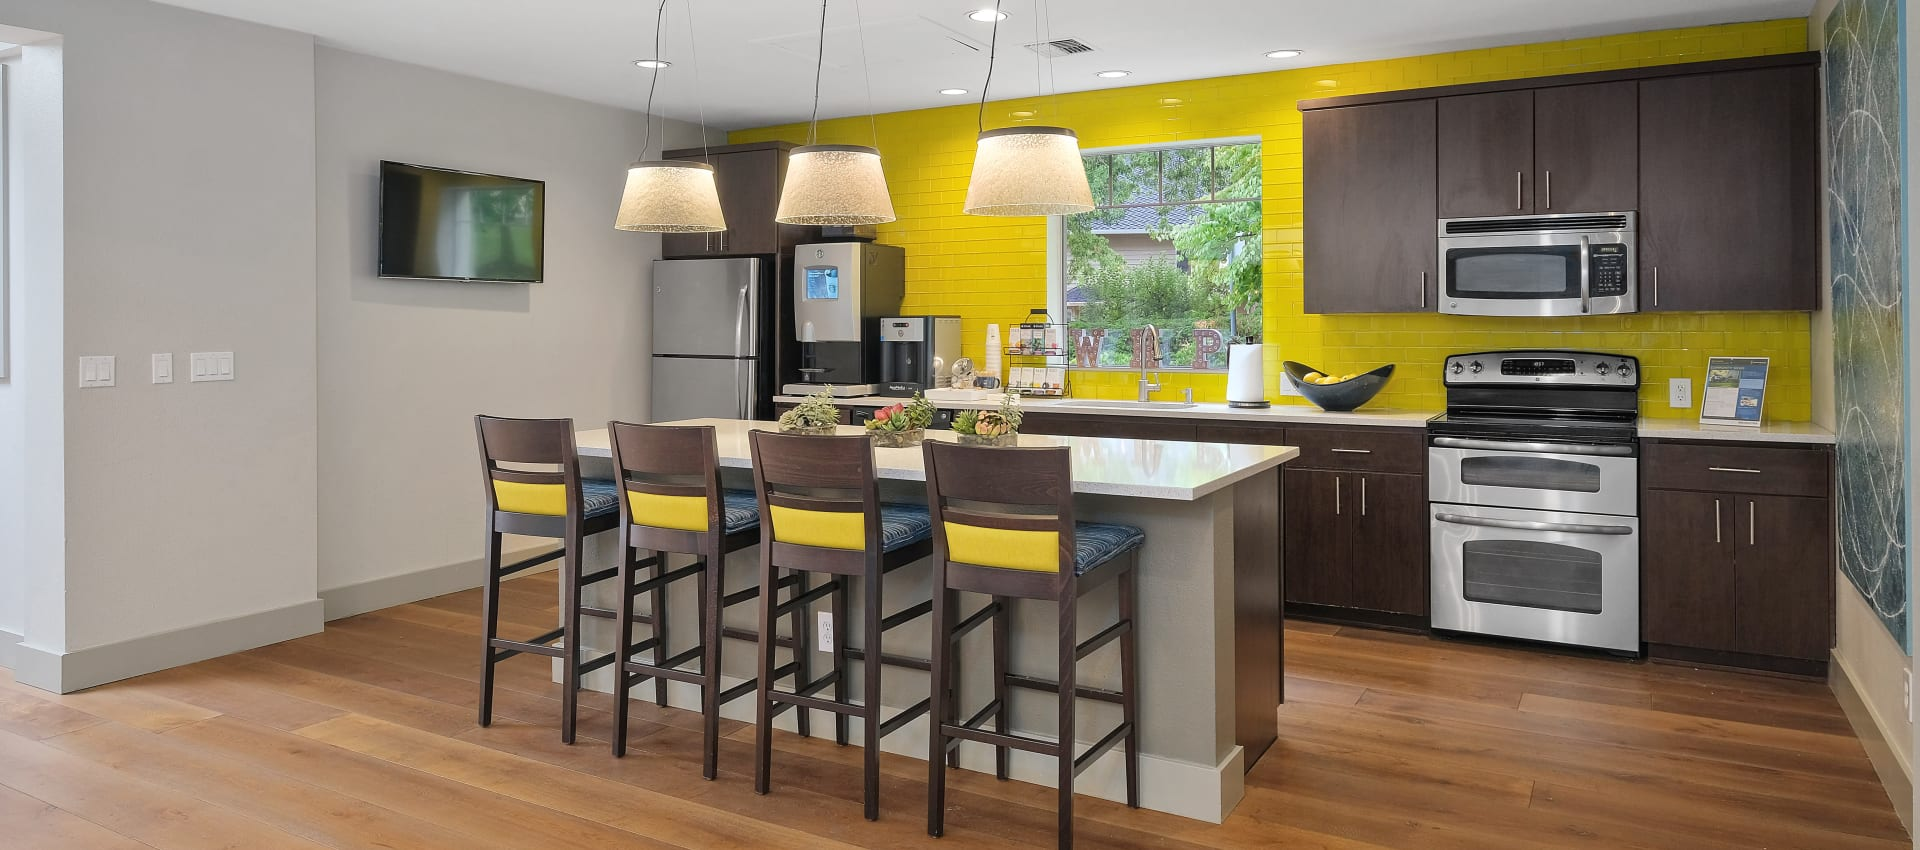 Clubhouse Kitchen at Waterhouse Place in Beaverton, OR